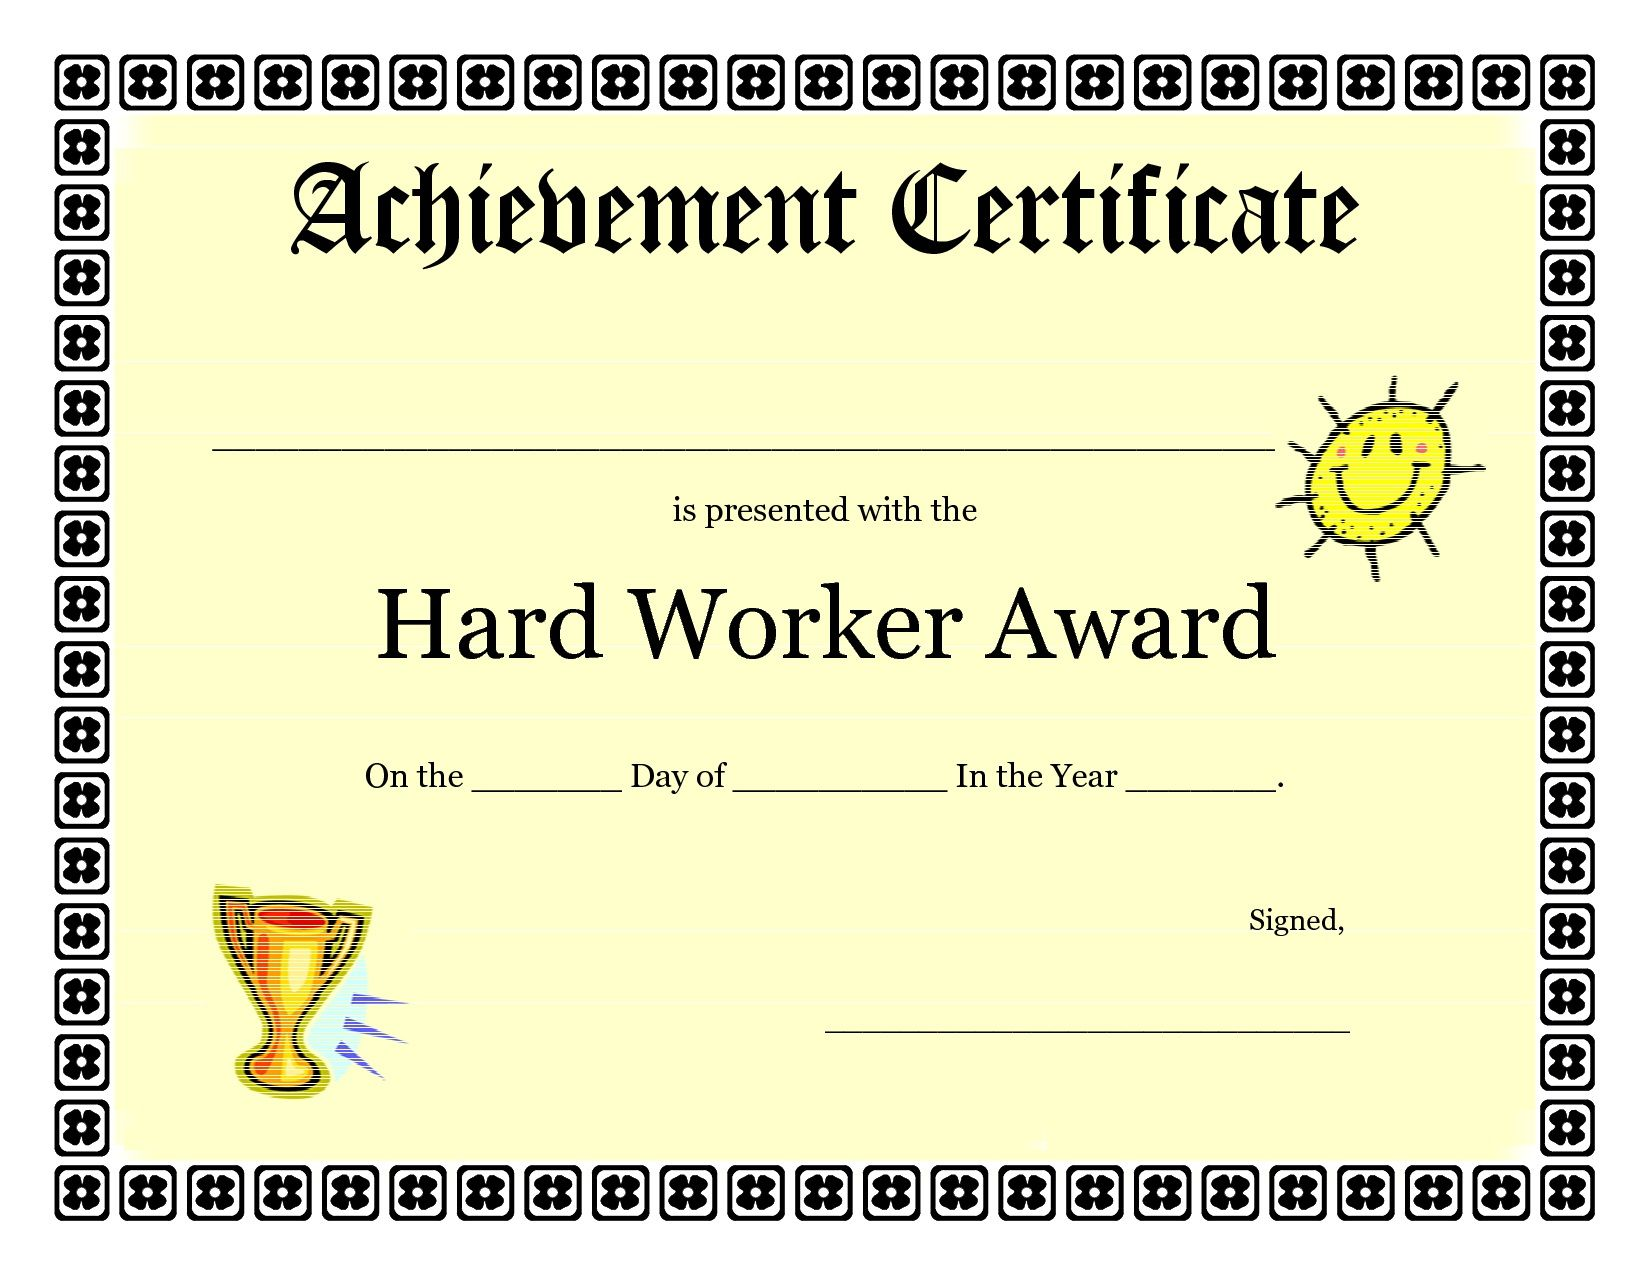 student of the year award certificate templates - printable achievement certificates kids hard worker